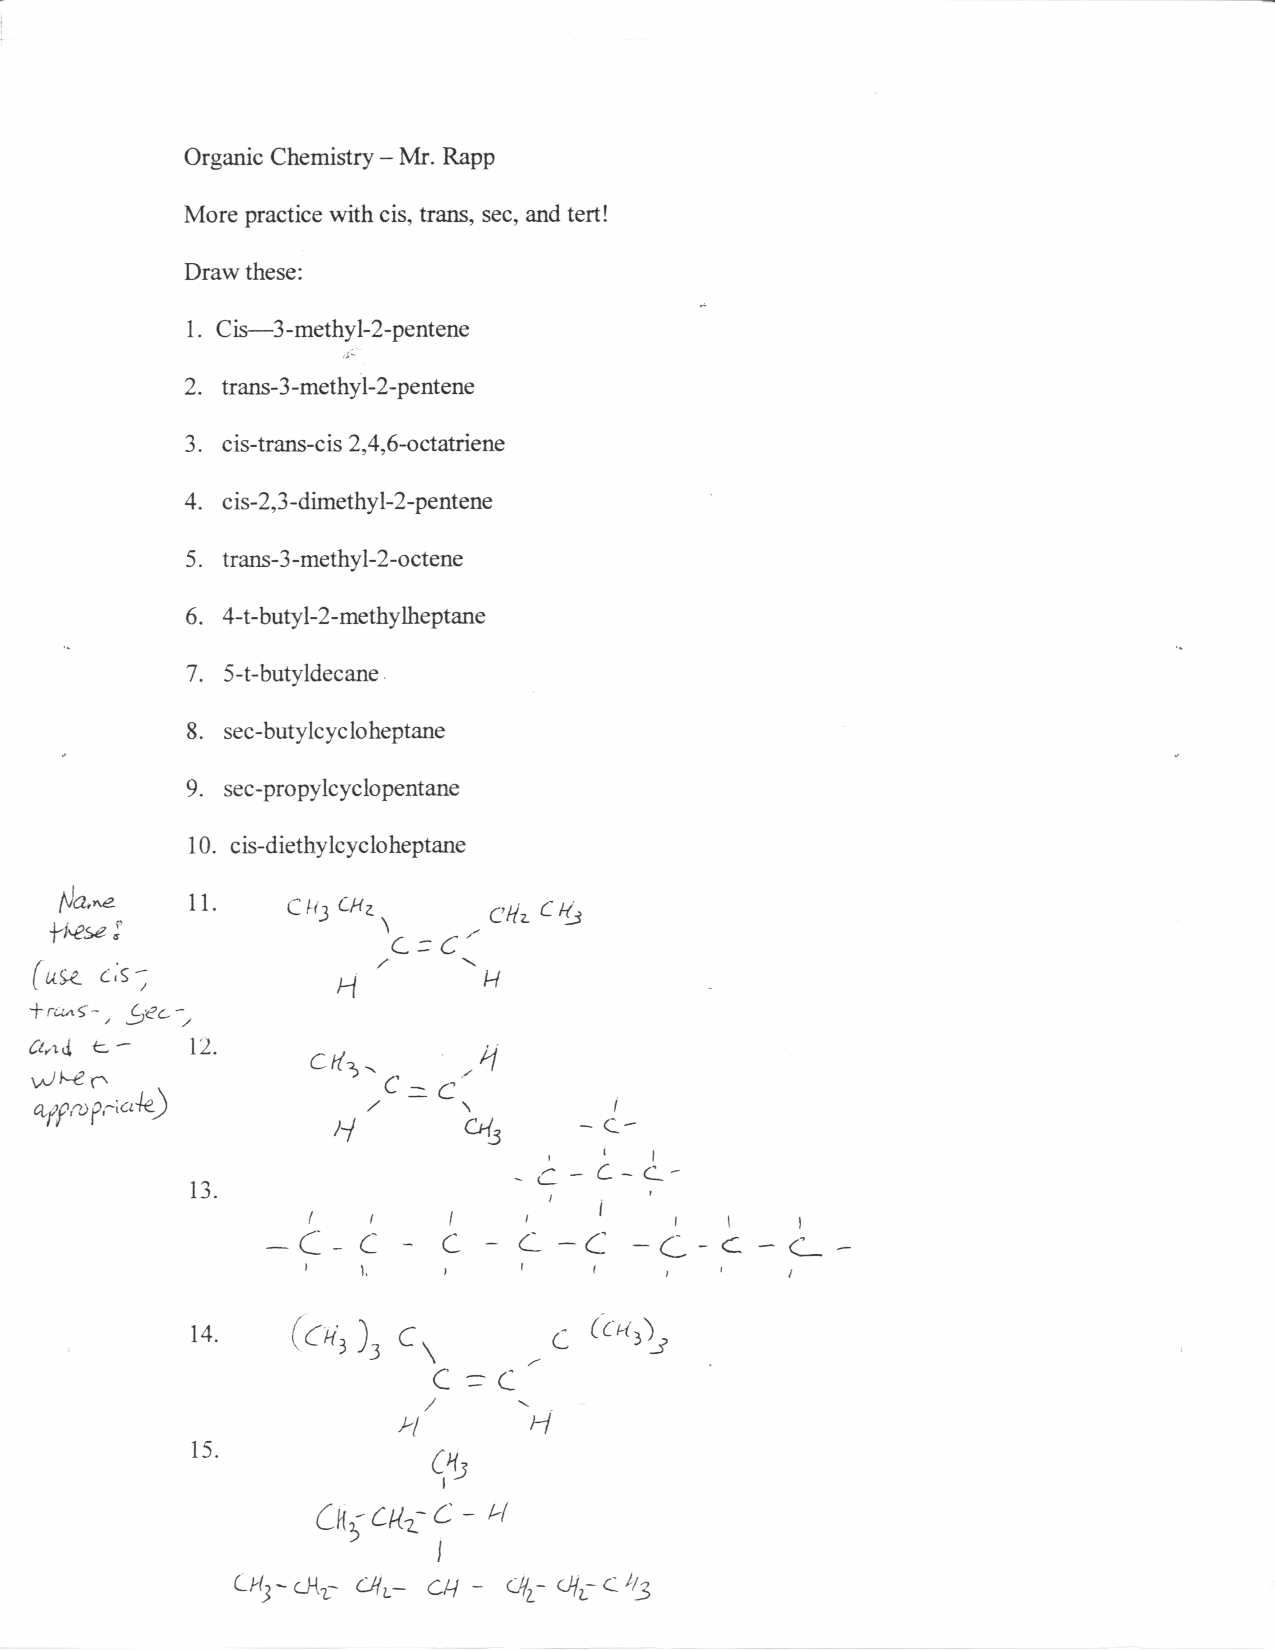 Worksheets Organic Nomenclature Worksheet organic chemistry cis trans sec